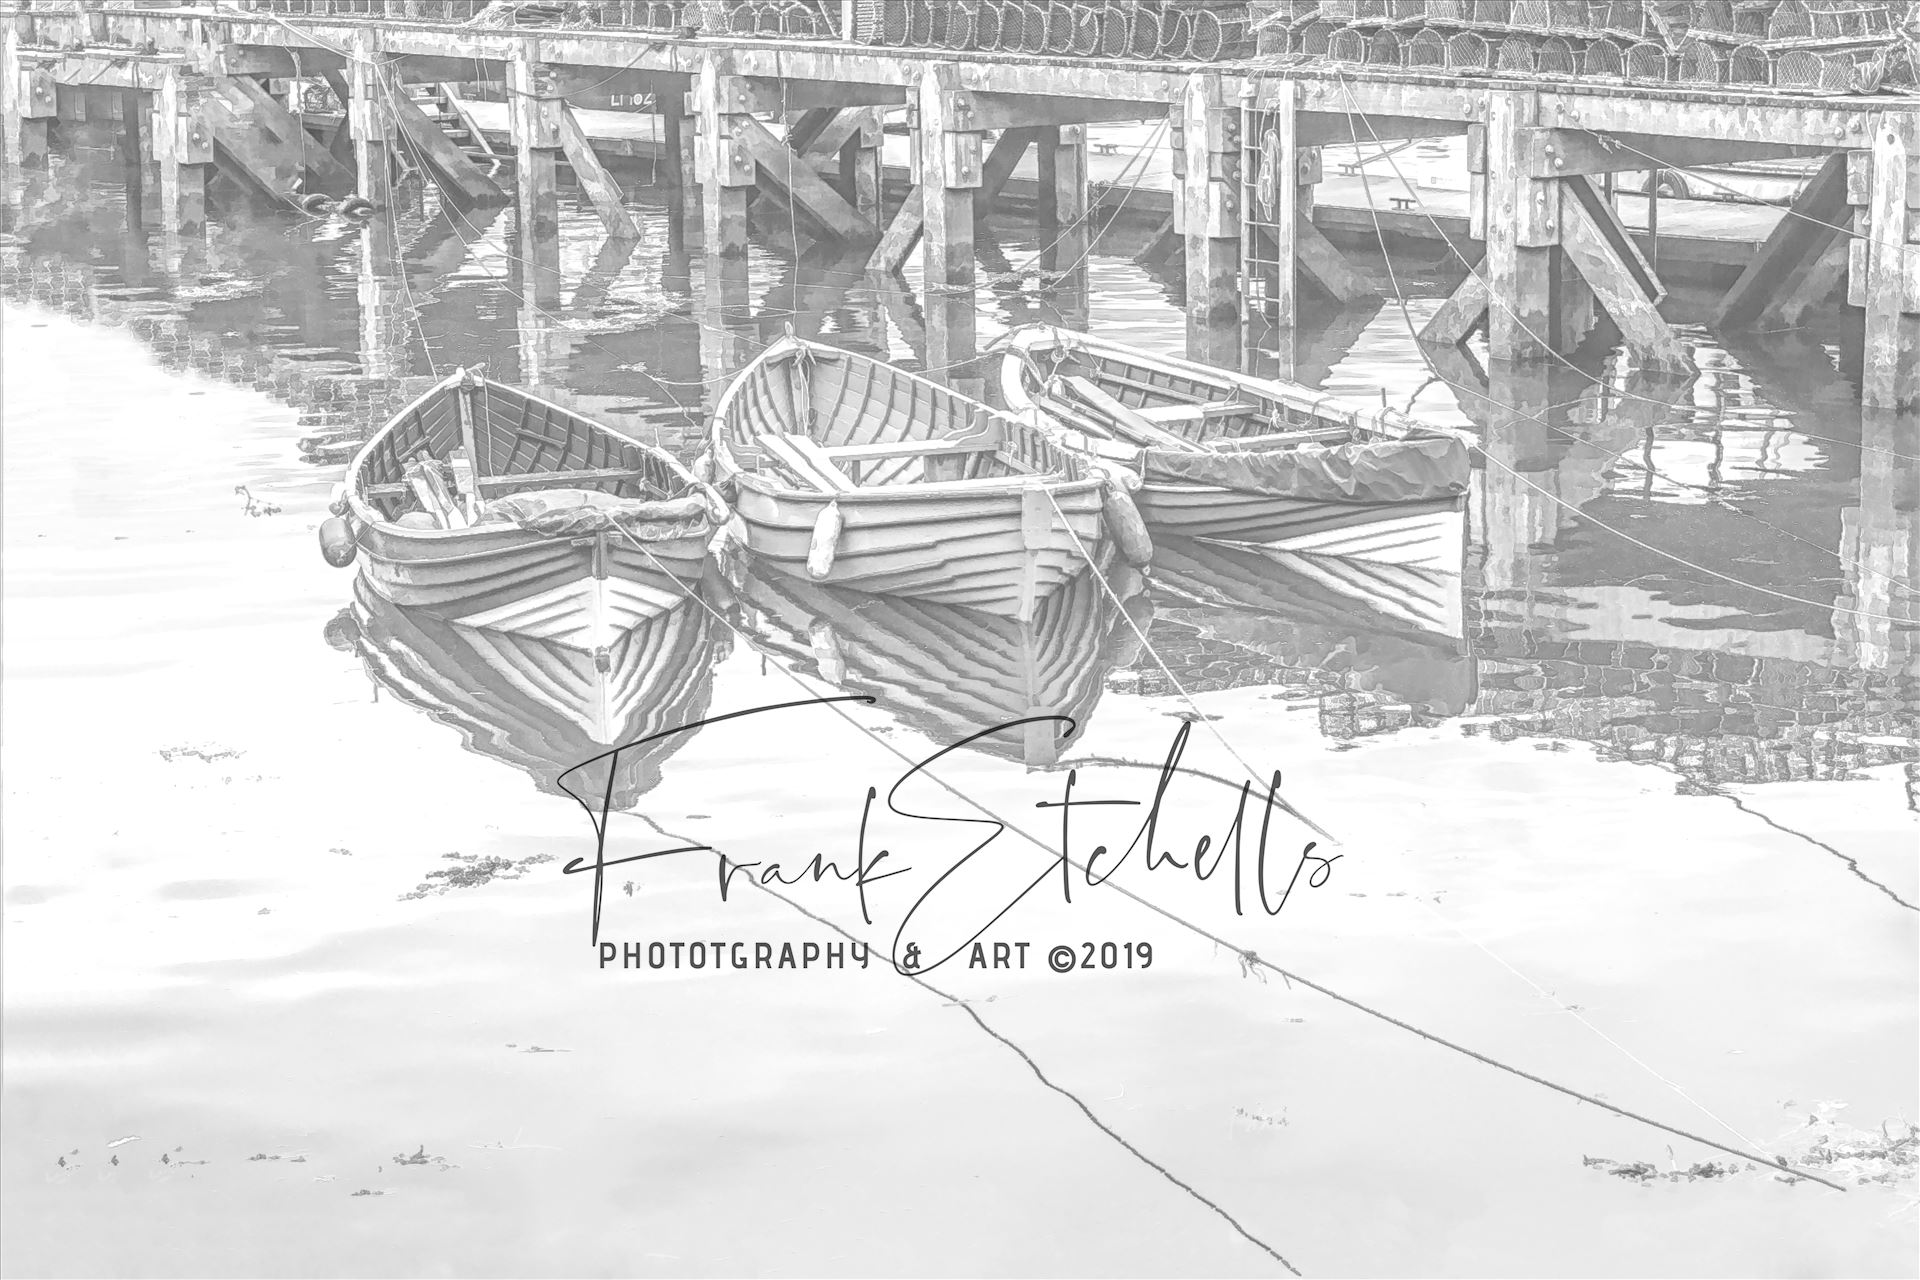 Three Tethered Boats Whitby. Edit; Pencil 2 - 'Three Tethered Boats, Whitby' to portray the boats as light pencil sketch and light reflections to the surface of the water. *Slight variation to 'Pencil 1'* by Frank Etchells Photography